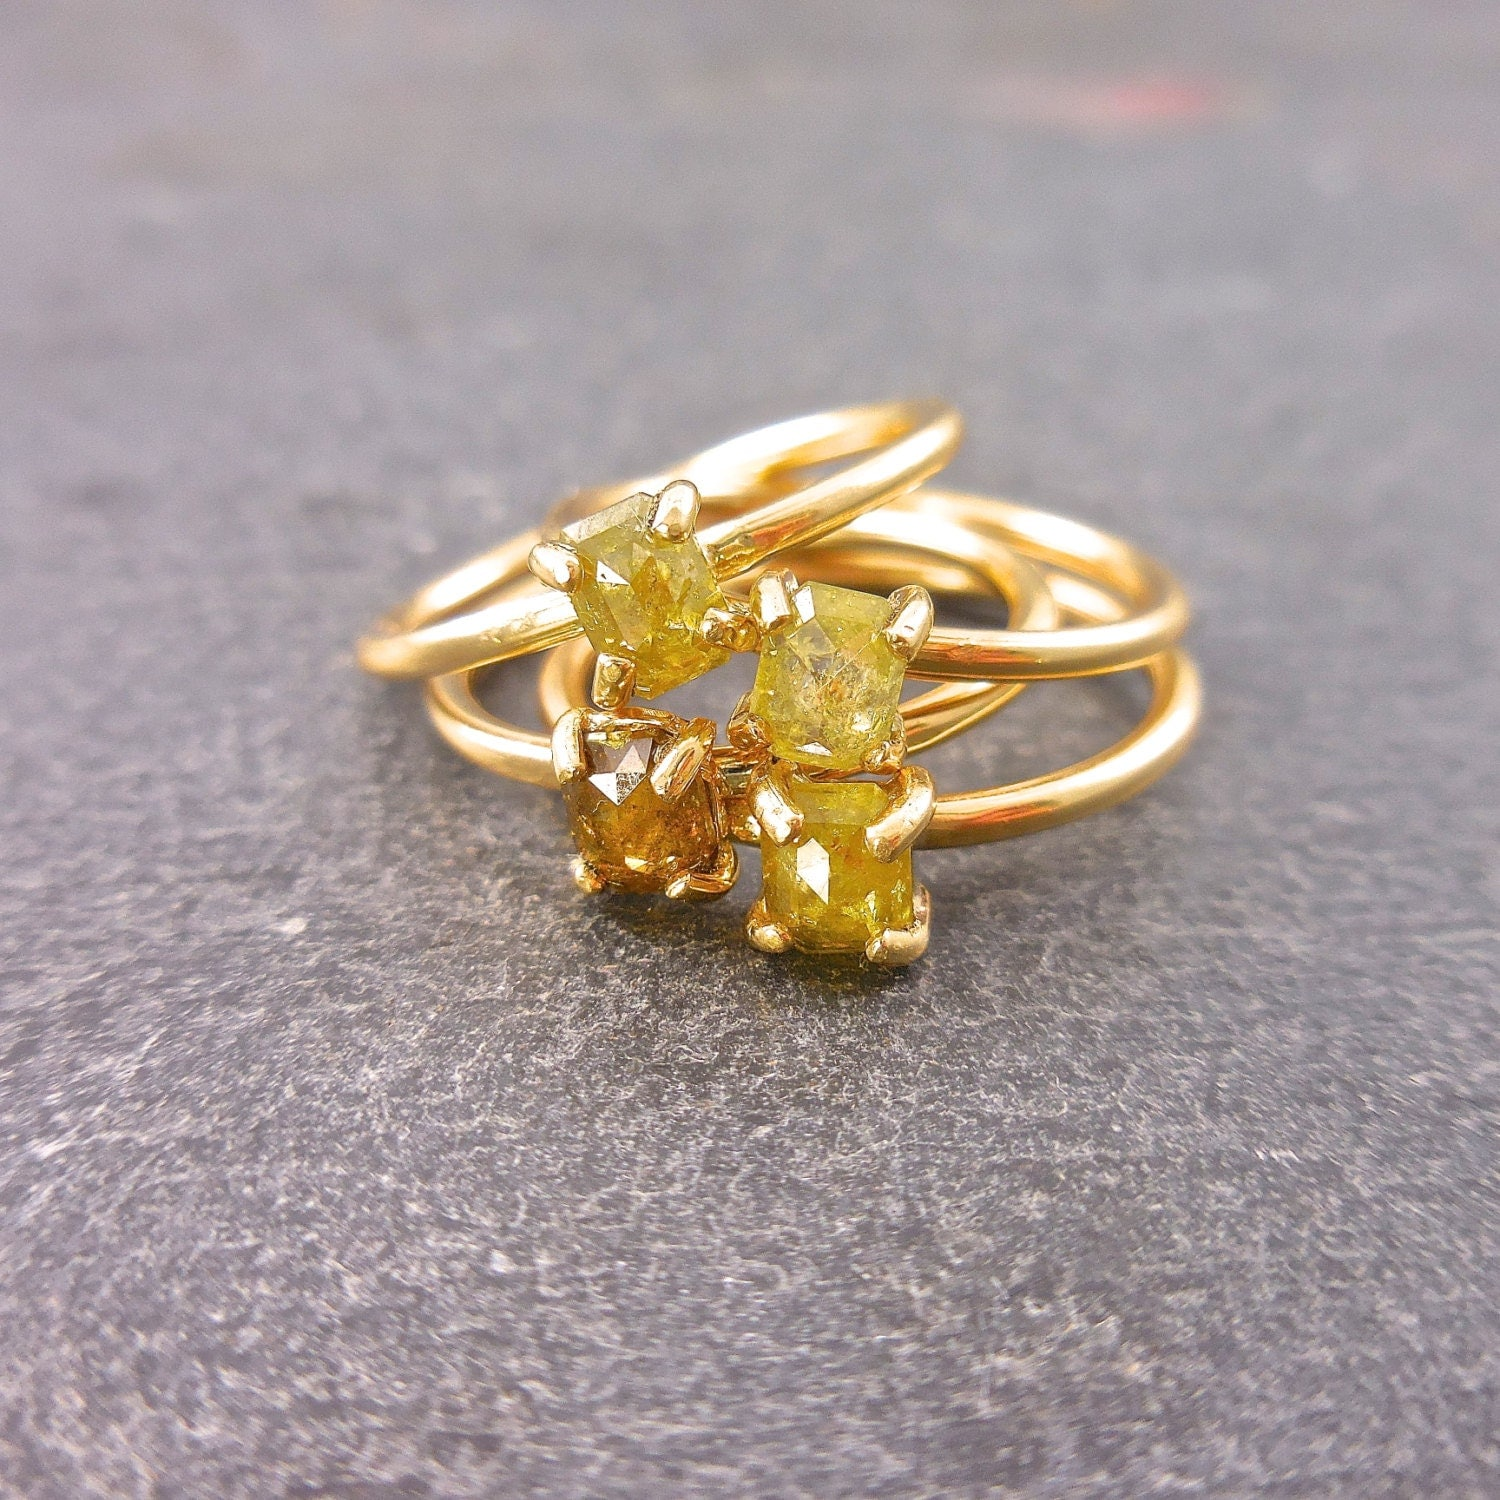 Rustic Diamond: Rose Cut Diamond Ring Rustic Diamond Fancy Yellow Orange